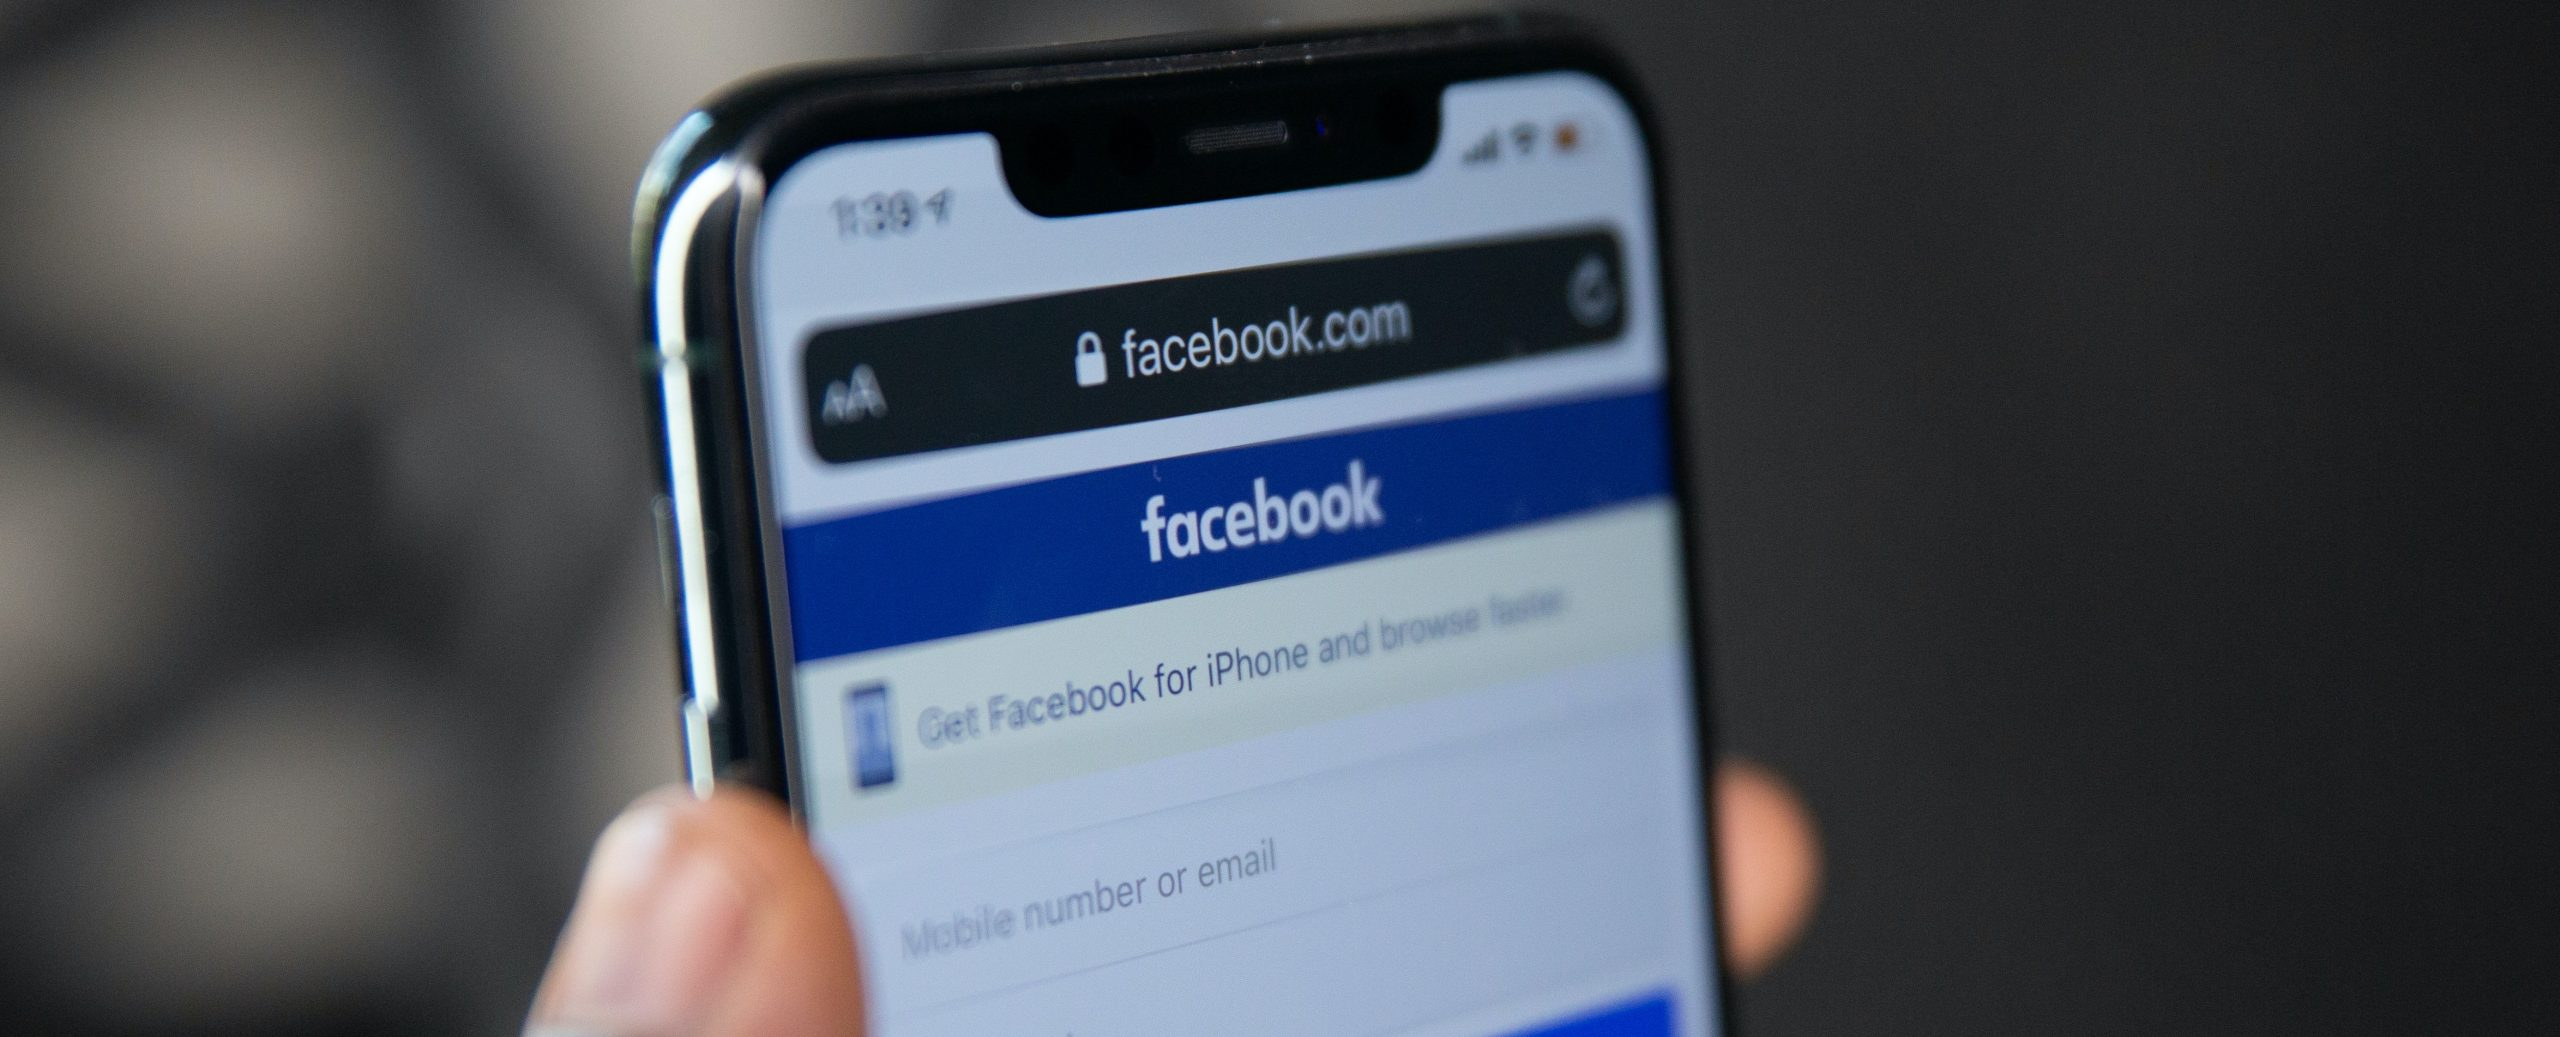 A phone with Facebook open in browser